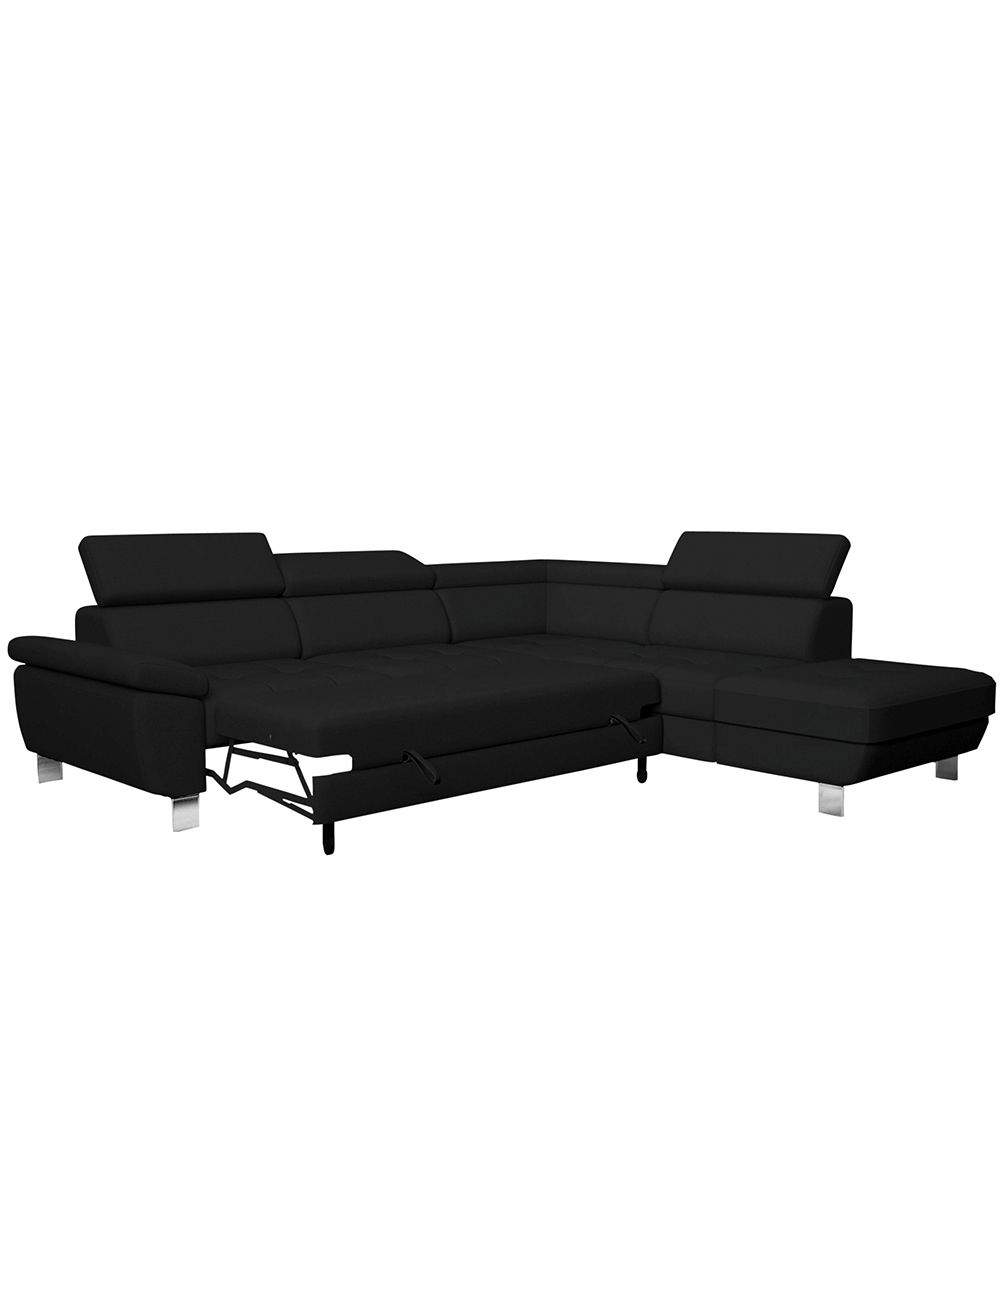 schlaf ecksofa kate schwarz. Black Bedroom Furniture Sets. Home Design Ideas